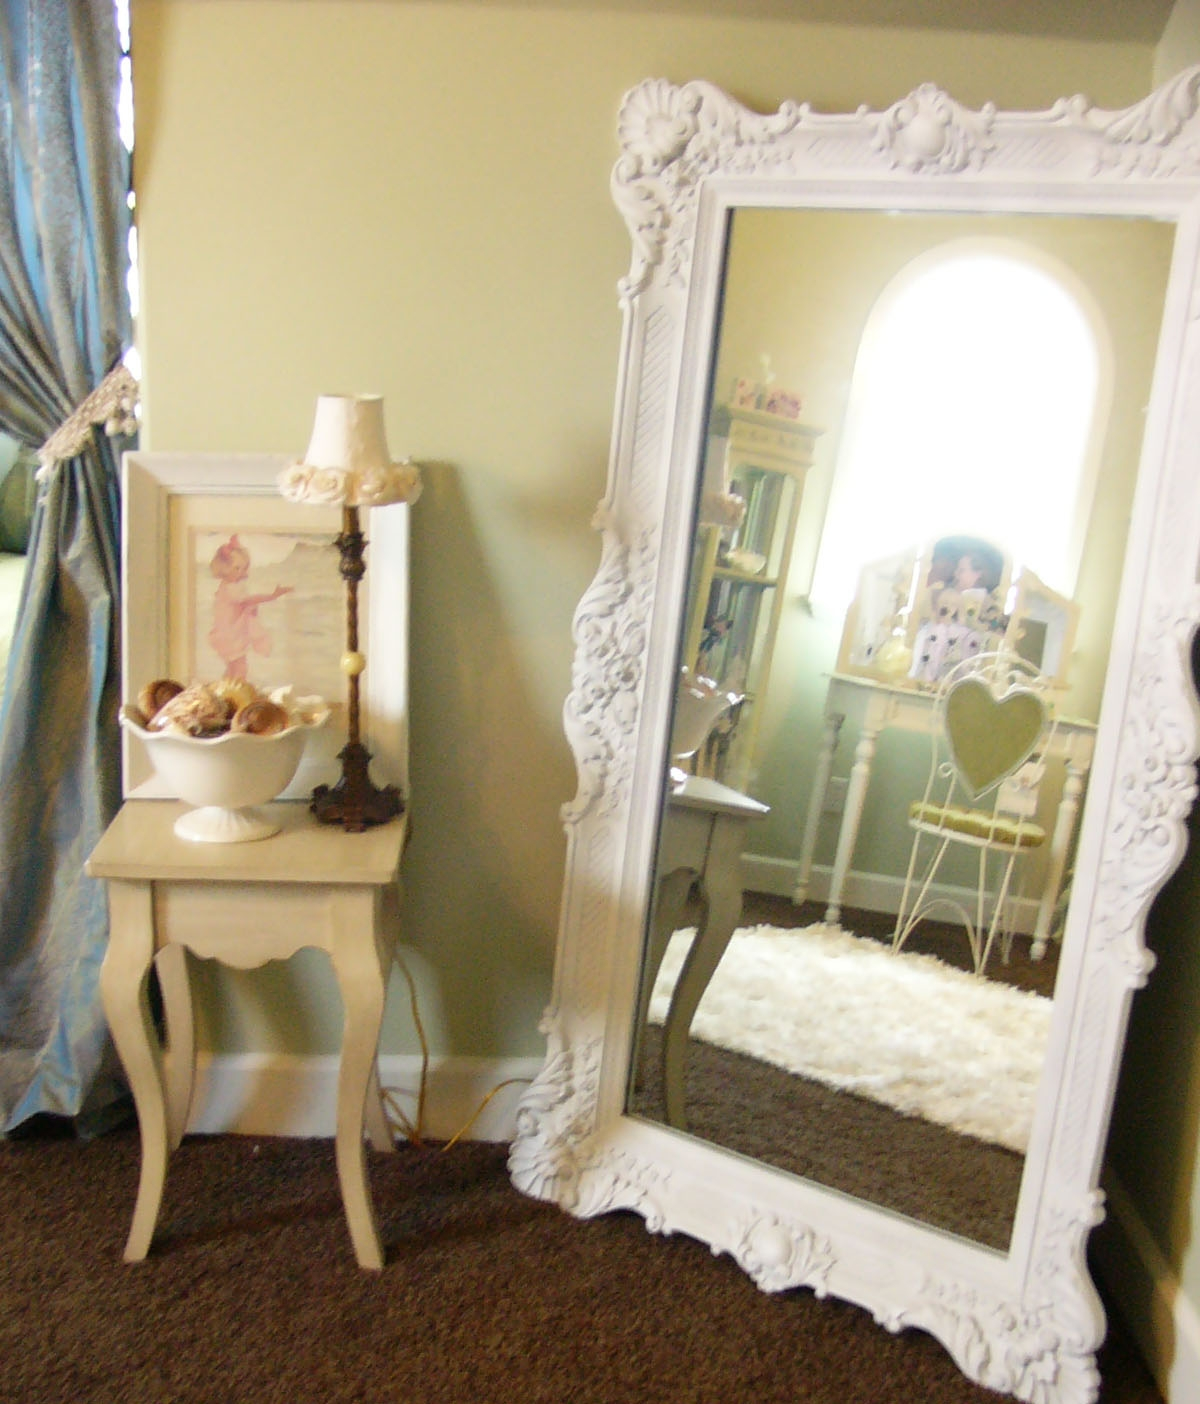 Strike A Reflector That Shines Your Homes Style In Our Decorative Intended For Huge Full Length Mirror (Image 14 of 15)